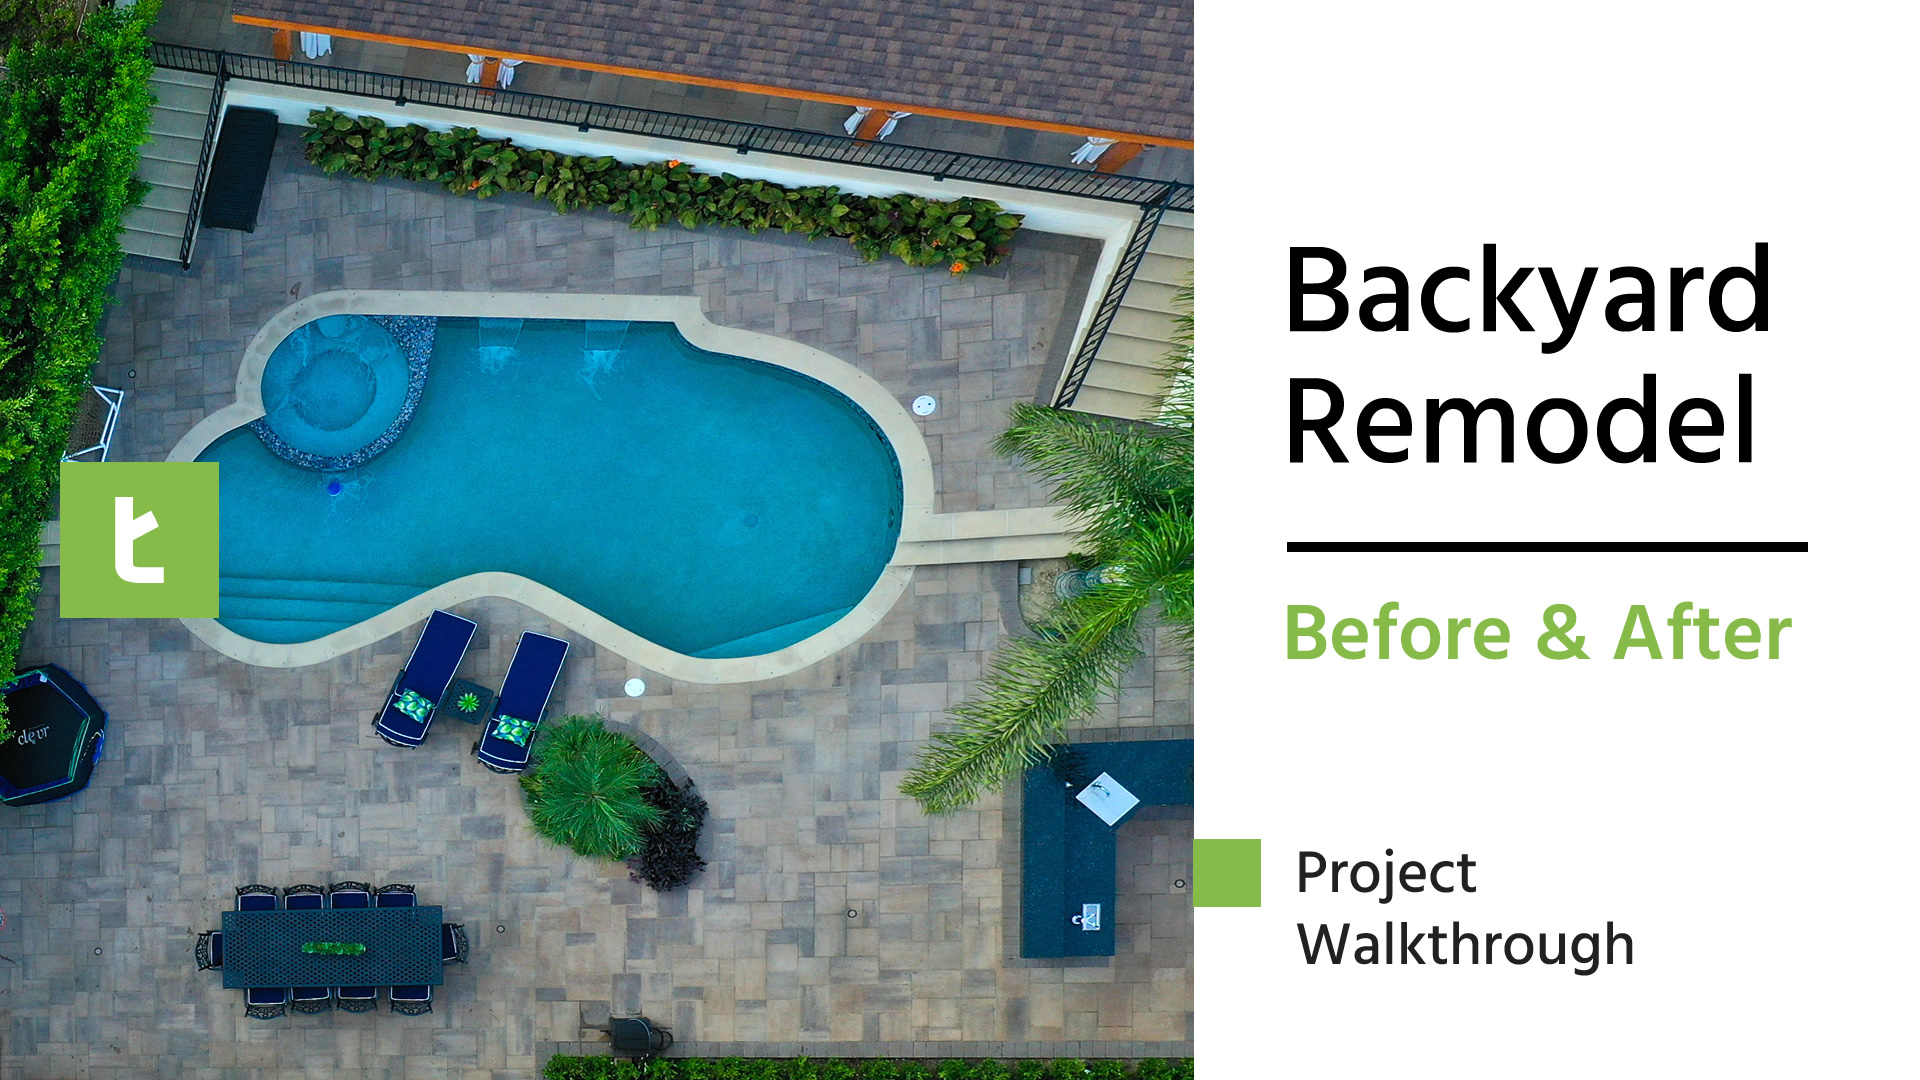 Before & After Backyard Remodel Project Walkthrough